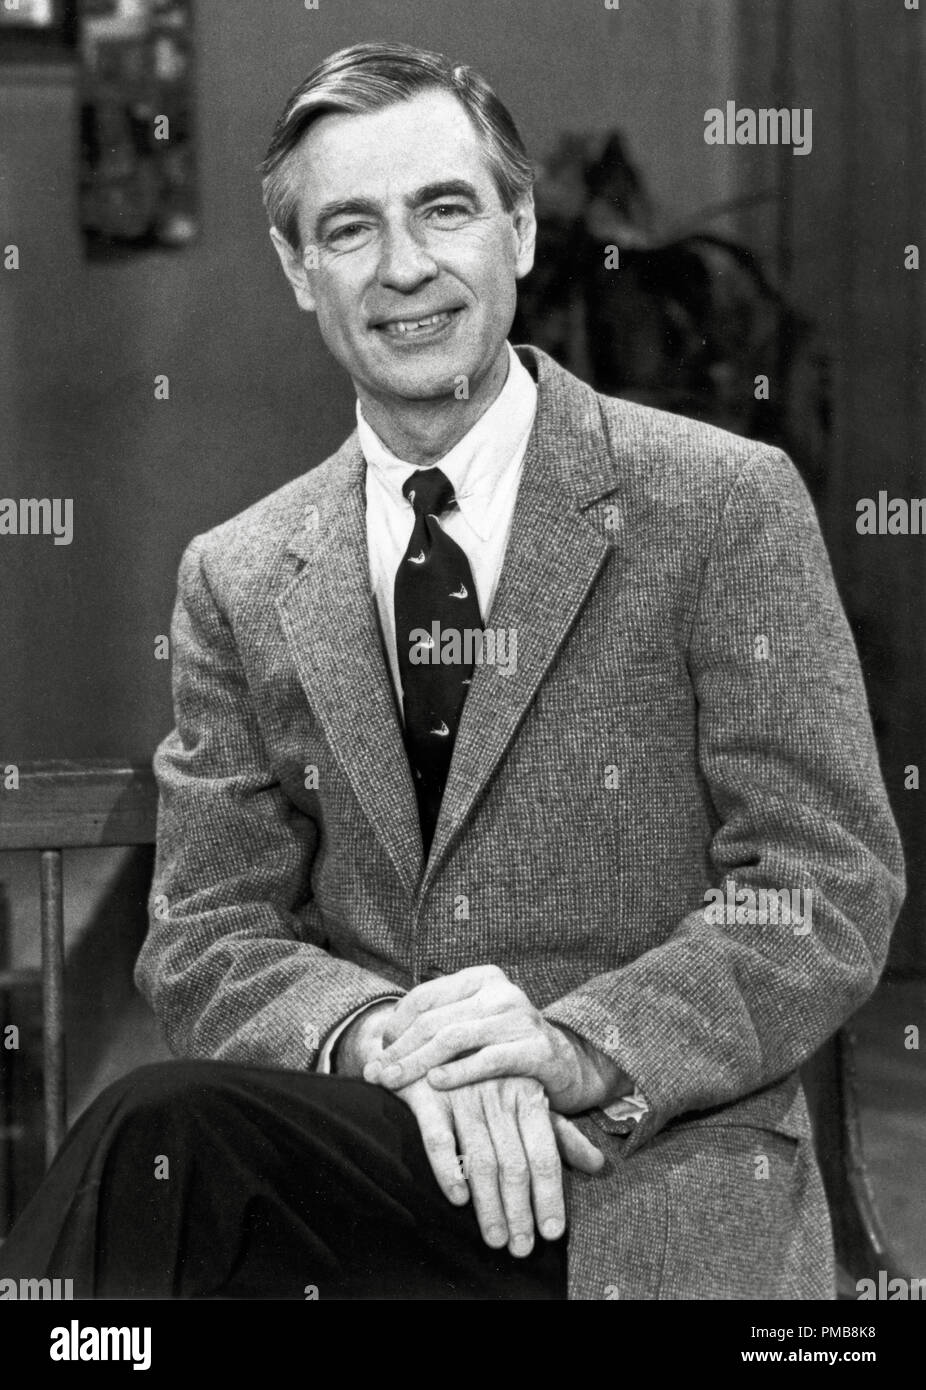 Fred Rogers Mister Rogers Neighborhood Circa 1984 File Reference 32337 259tha Stock Photo Alamy